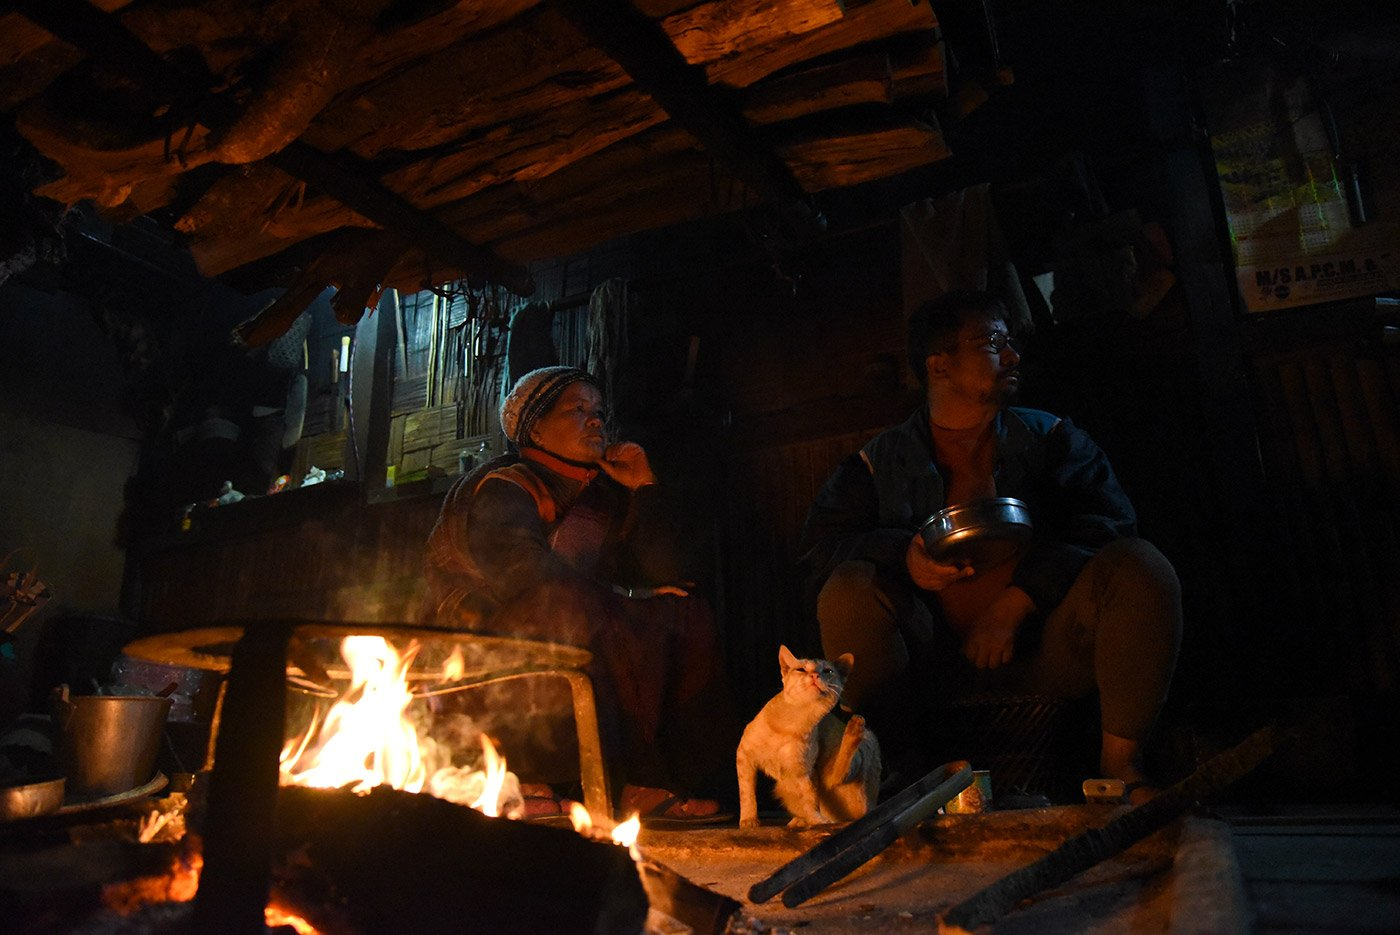 Narang Tam and Yamang's house – I stayed here for two nights, and they served traditional Apatani food – rice is the main item in their meals, and is usually accompanied by meat (pork, chicken, rat) and other delicacies.